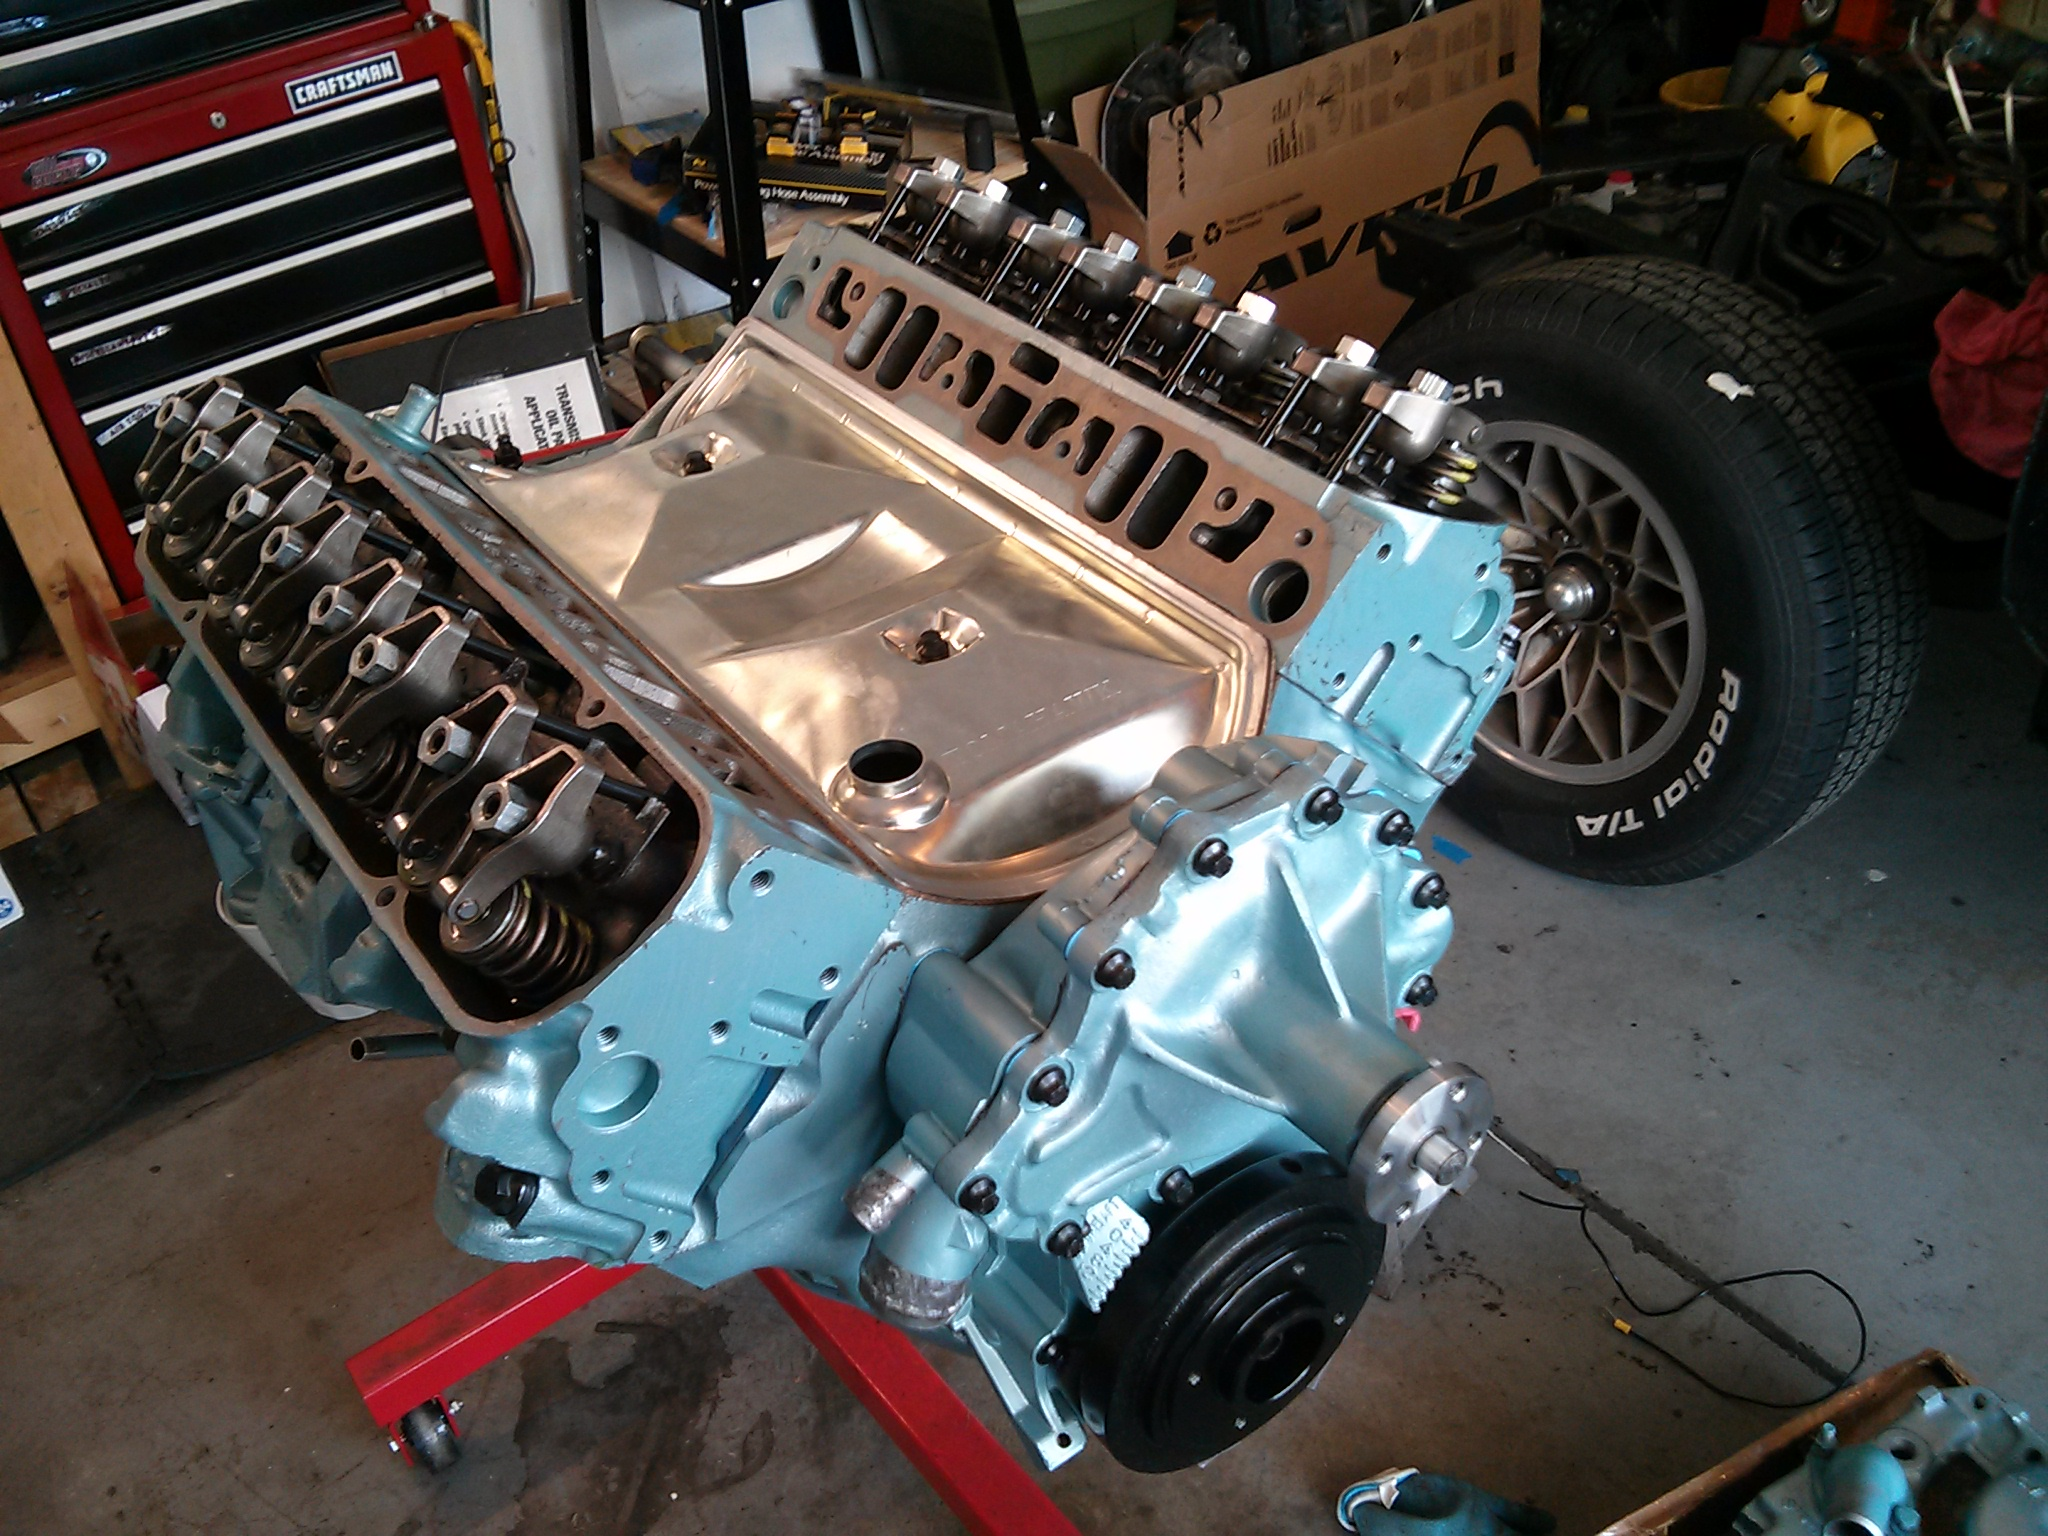 1966 Pontiac Catalina Wiring Diagram furthermore 68 Buick Electra Wiring Diagram likewise Don 039 T Cry Little Girl in addition 1966 Buick Special Wiring Diagram moreover 1968 Buick V6 Marine Engine Wiring Diagram. on 1967 buick electra wiring diagram